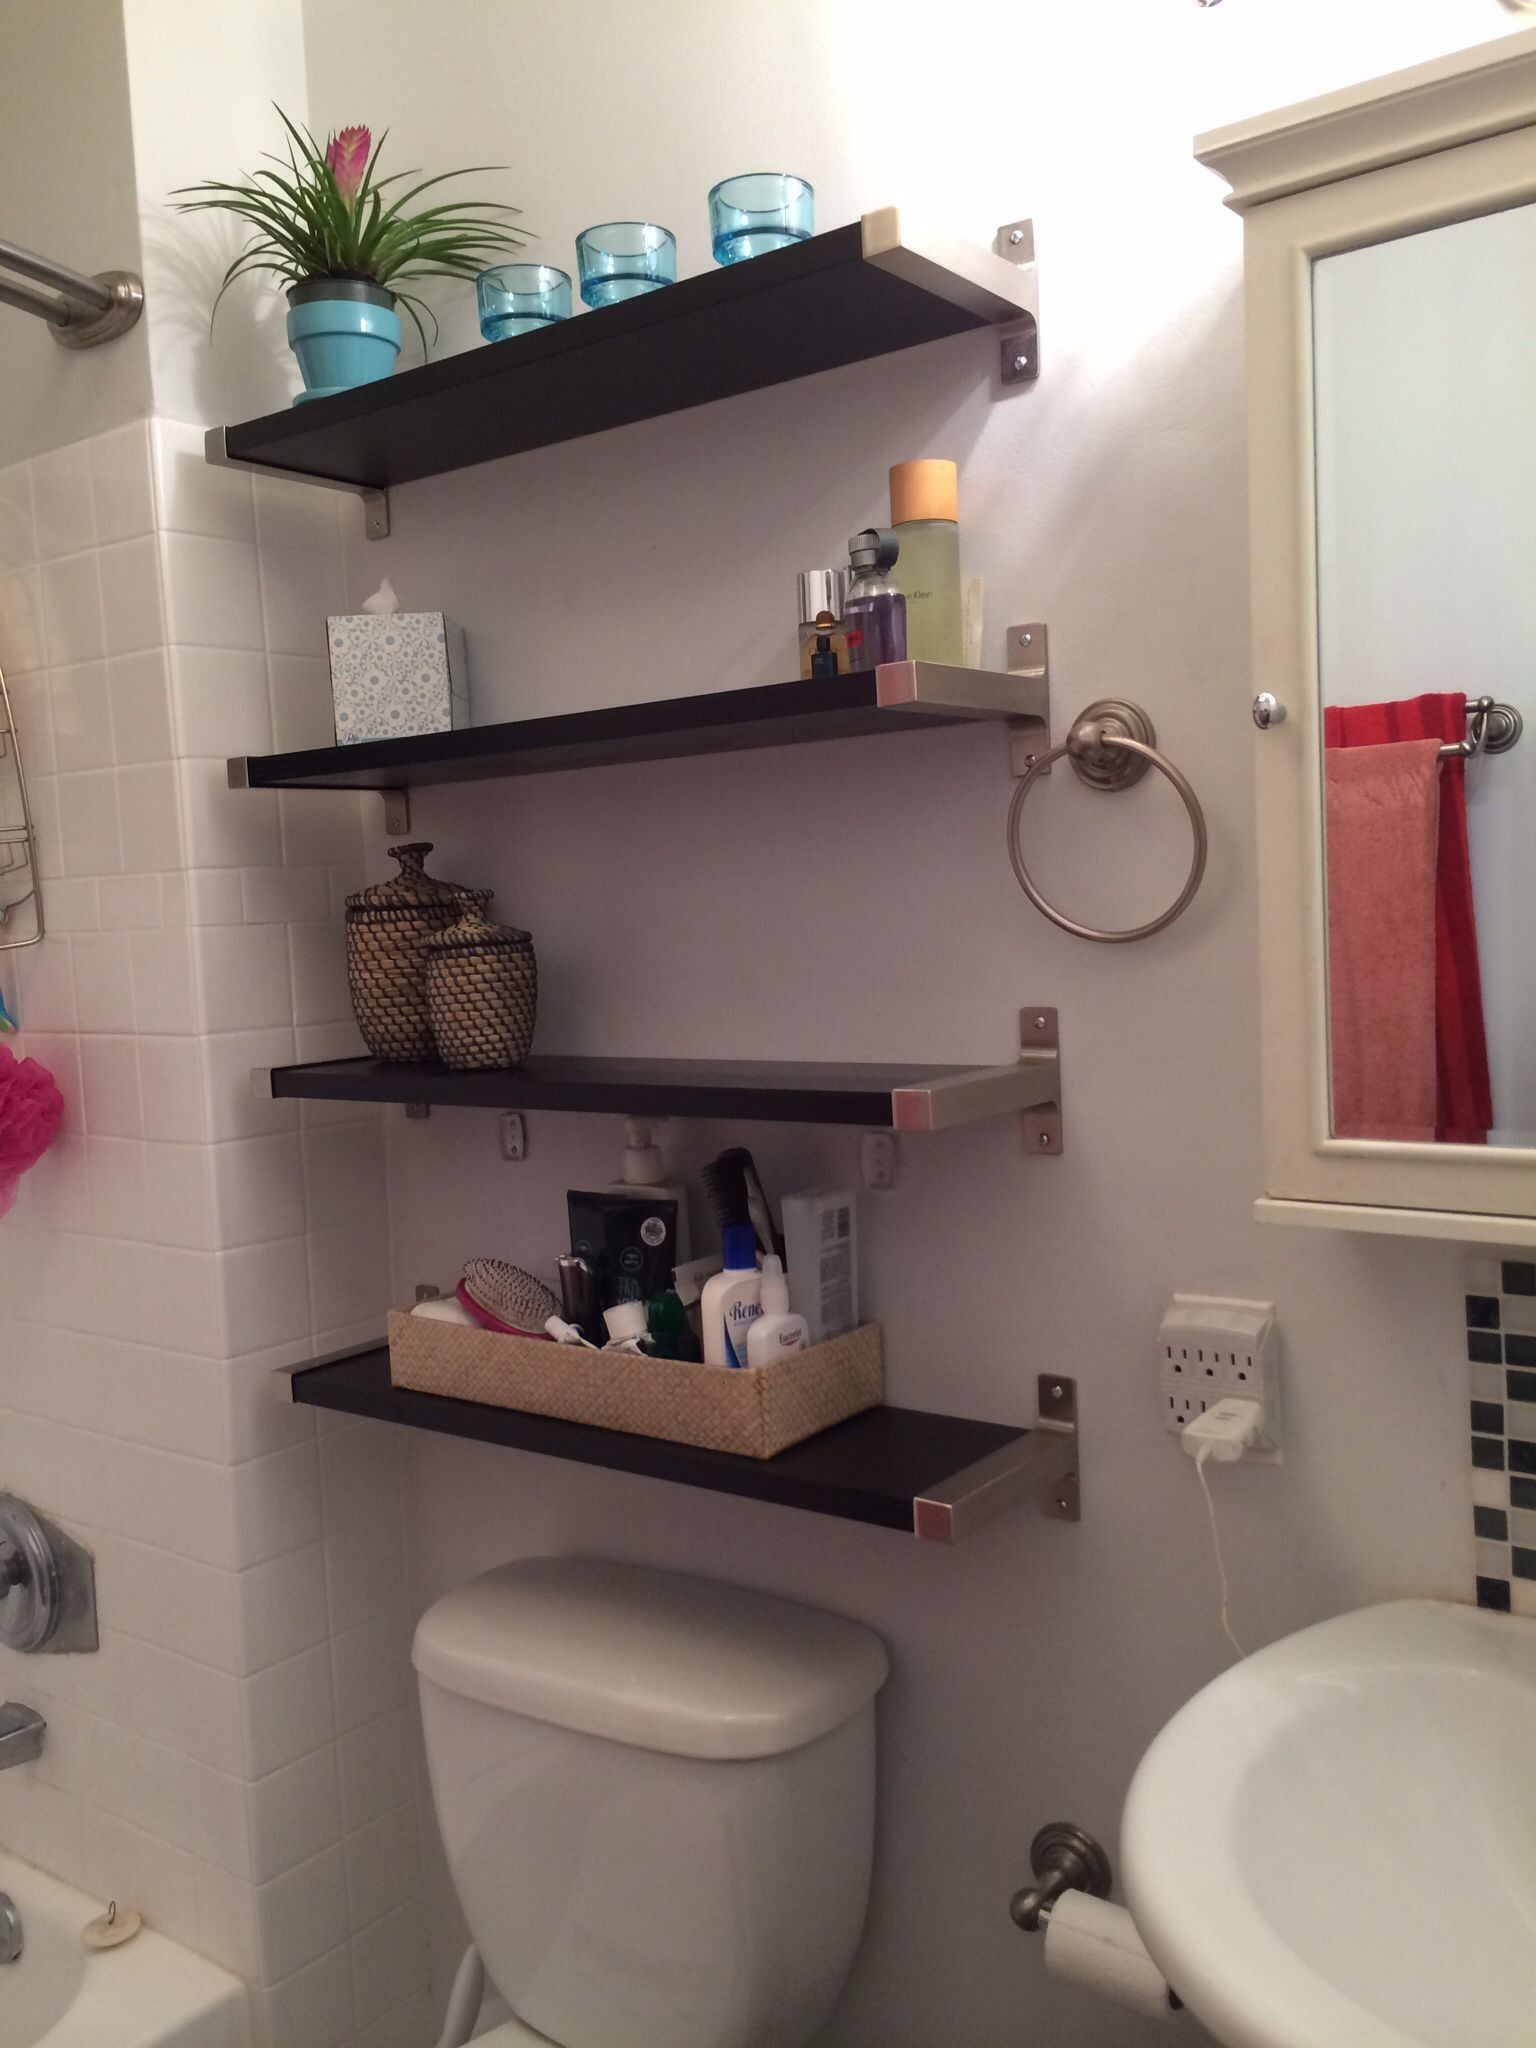 Great Ideas Of New Very Small Bathroom Storage Ideas For Visit Bdarop Com Diy Bathroom Storage Very Small Bathroom Small Bathroom Solutions